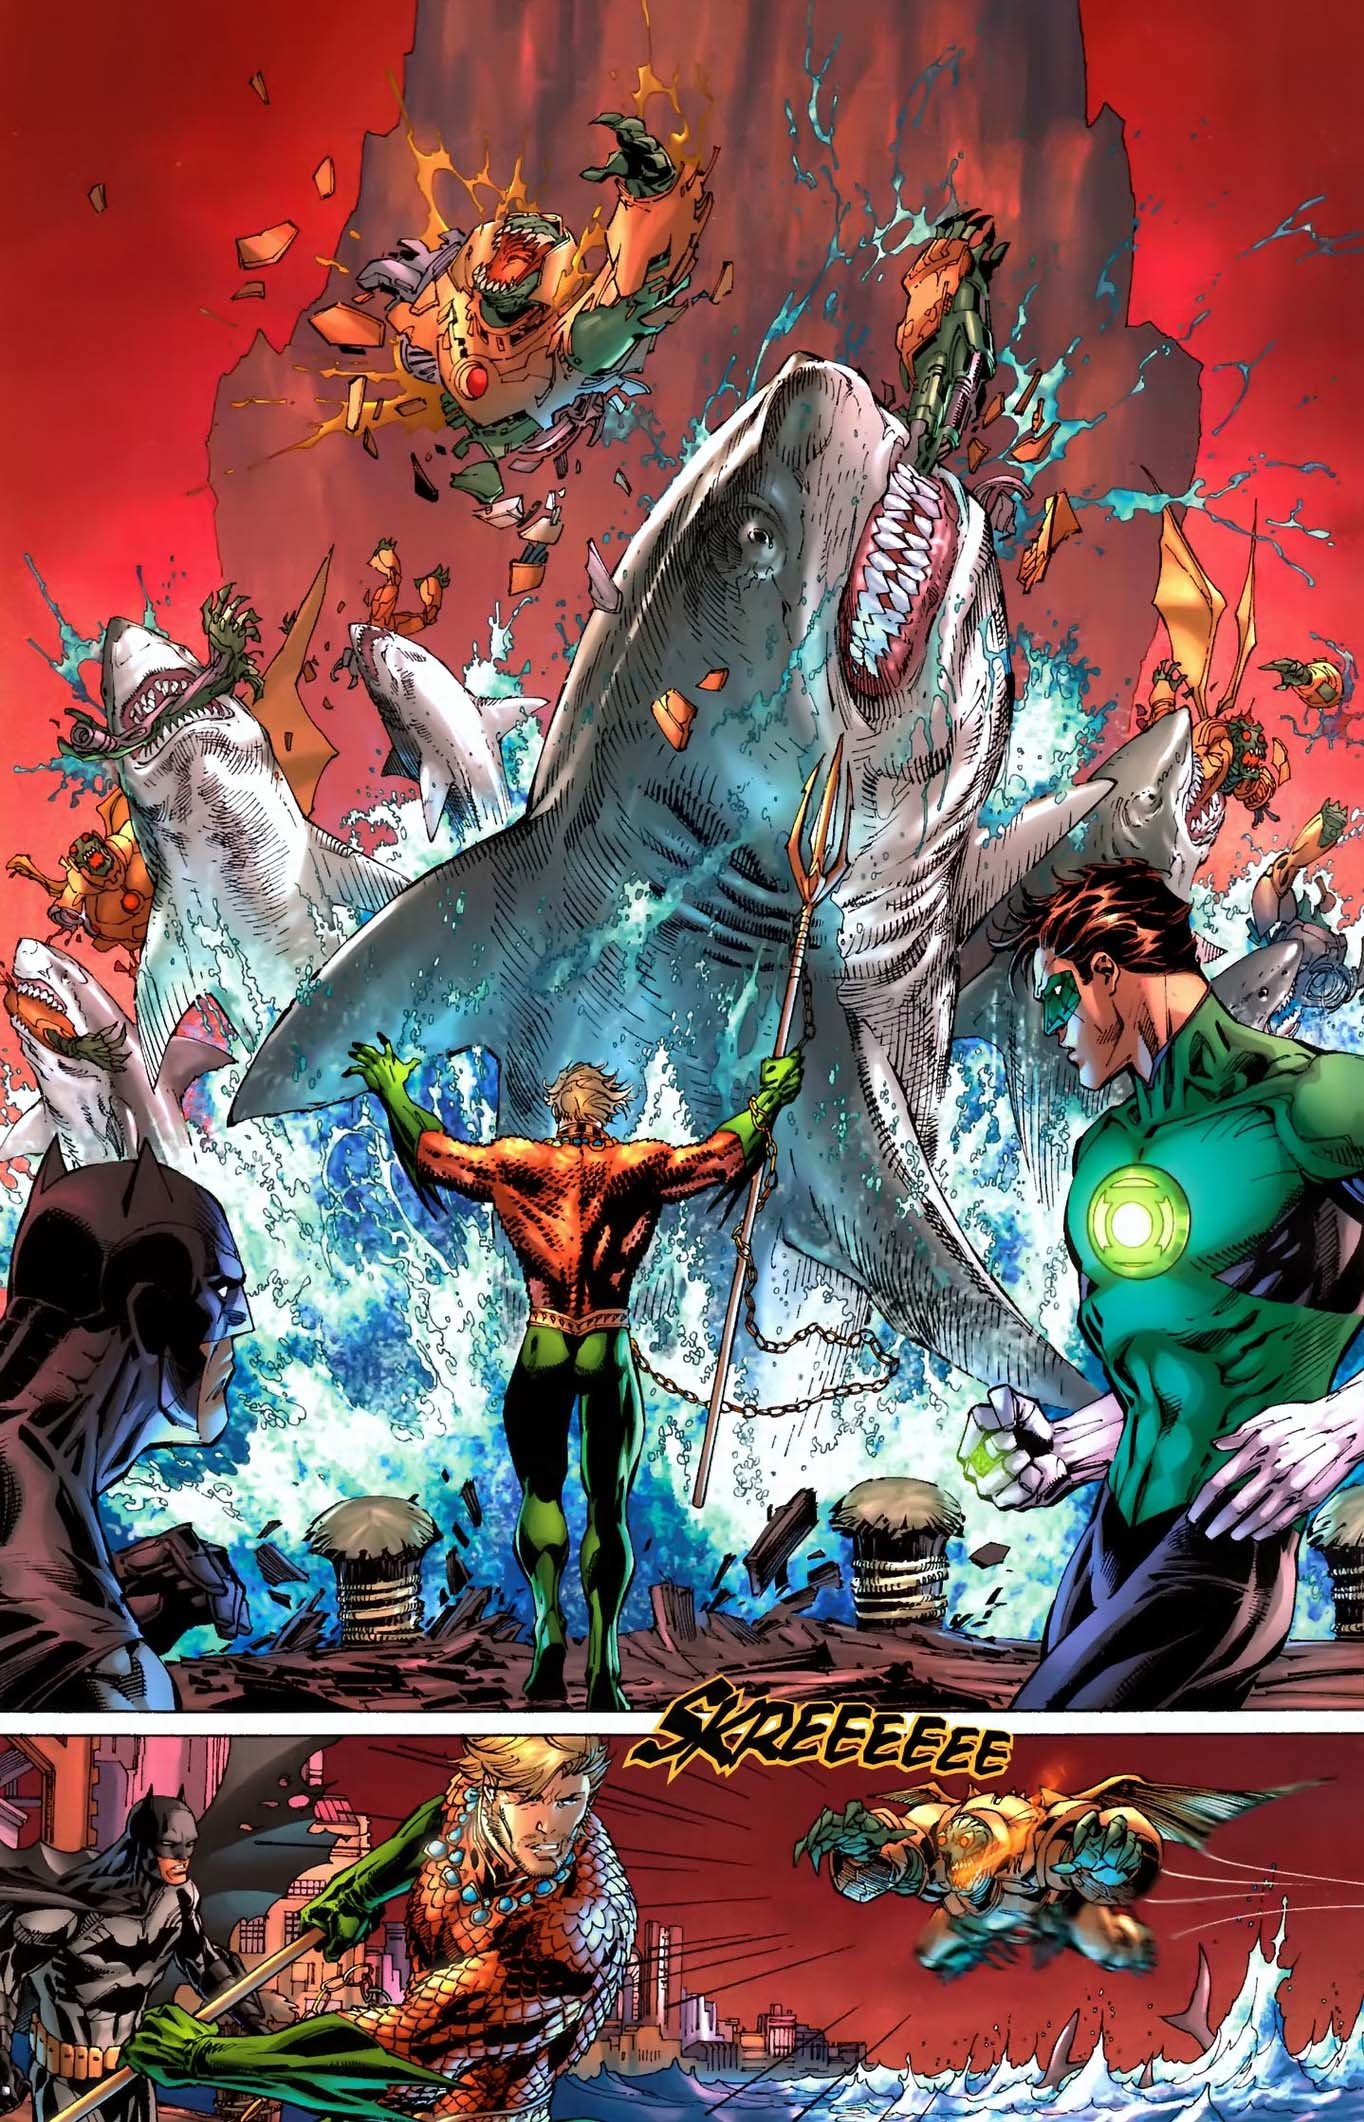 Swimming Wallpaper Quotes What Aquaman Can Do Comicnewbies